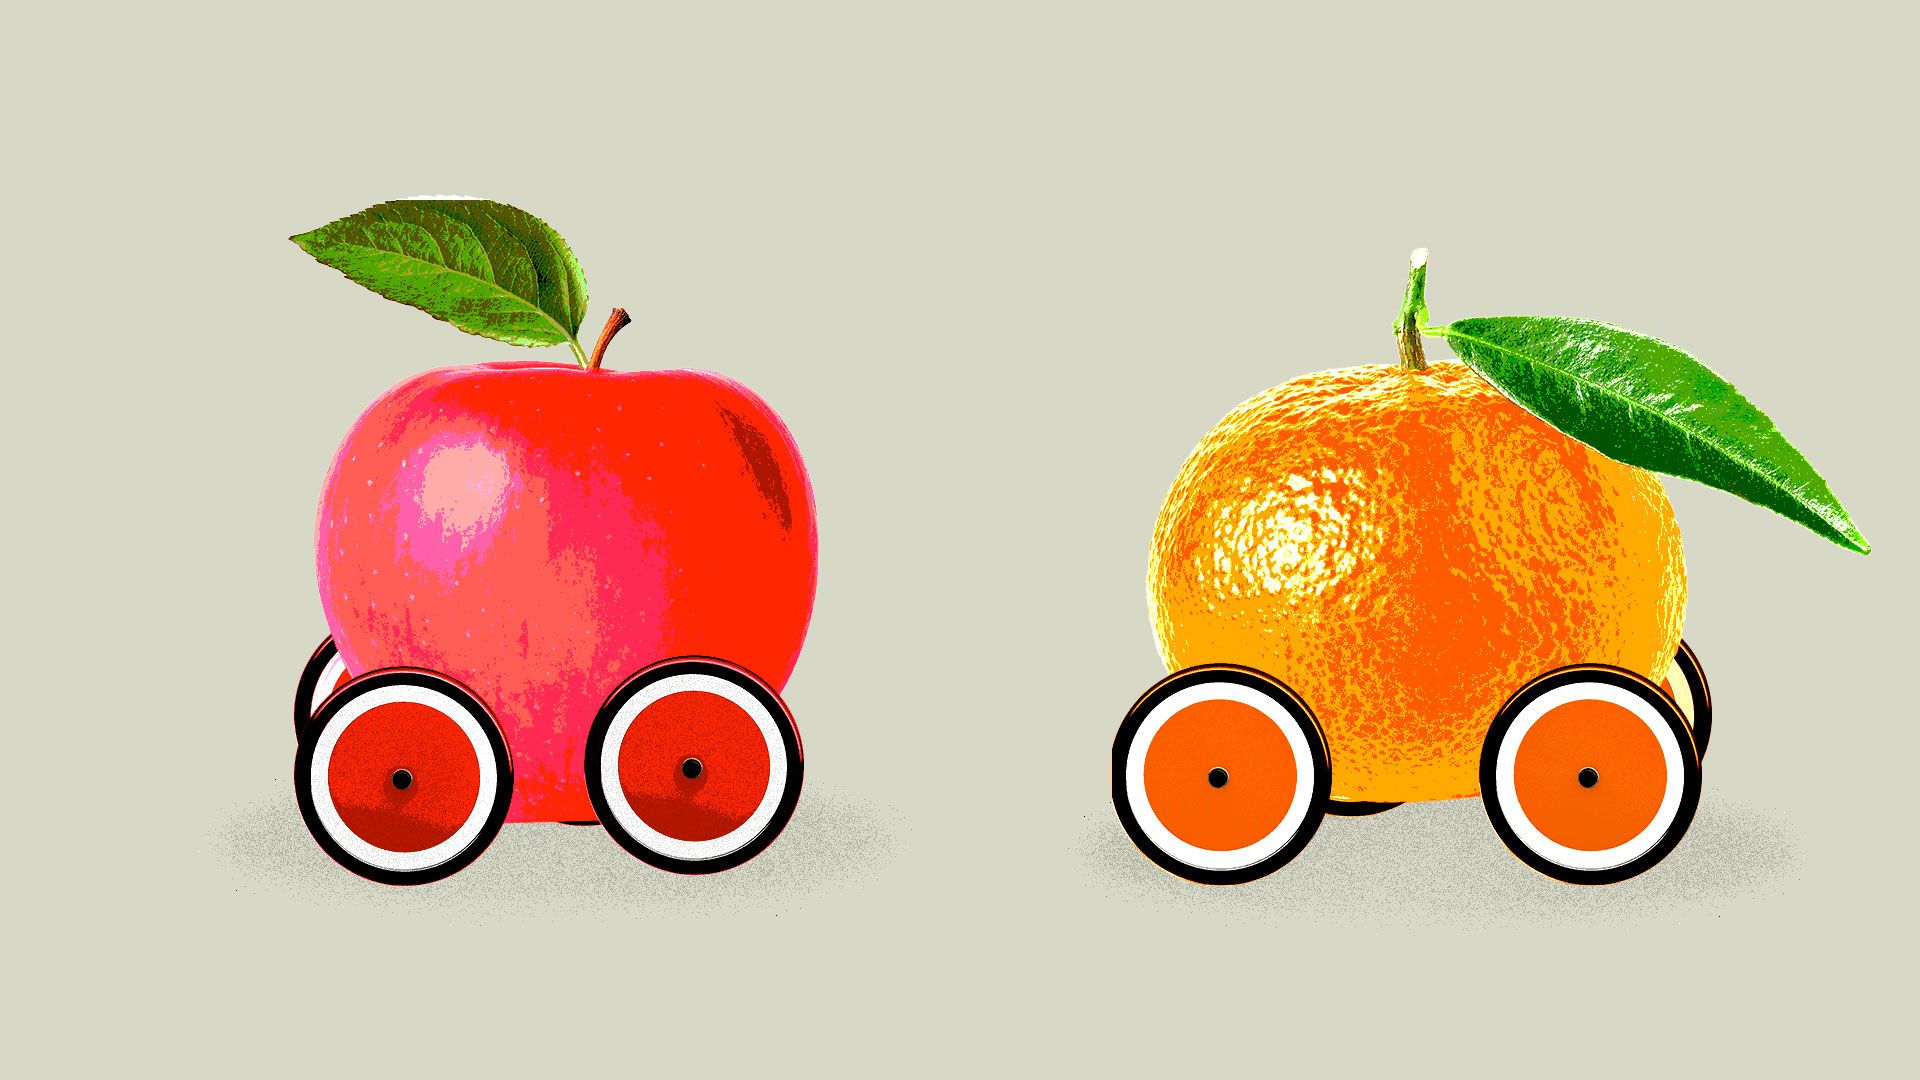 Illustration of an apple and an orange as cars.